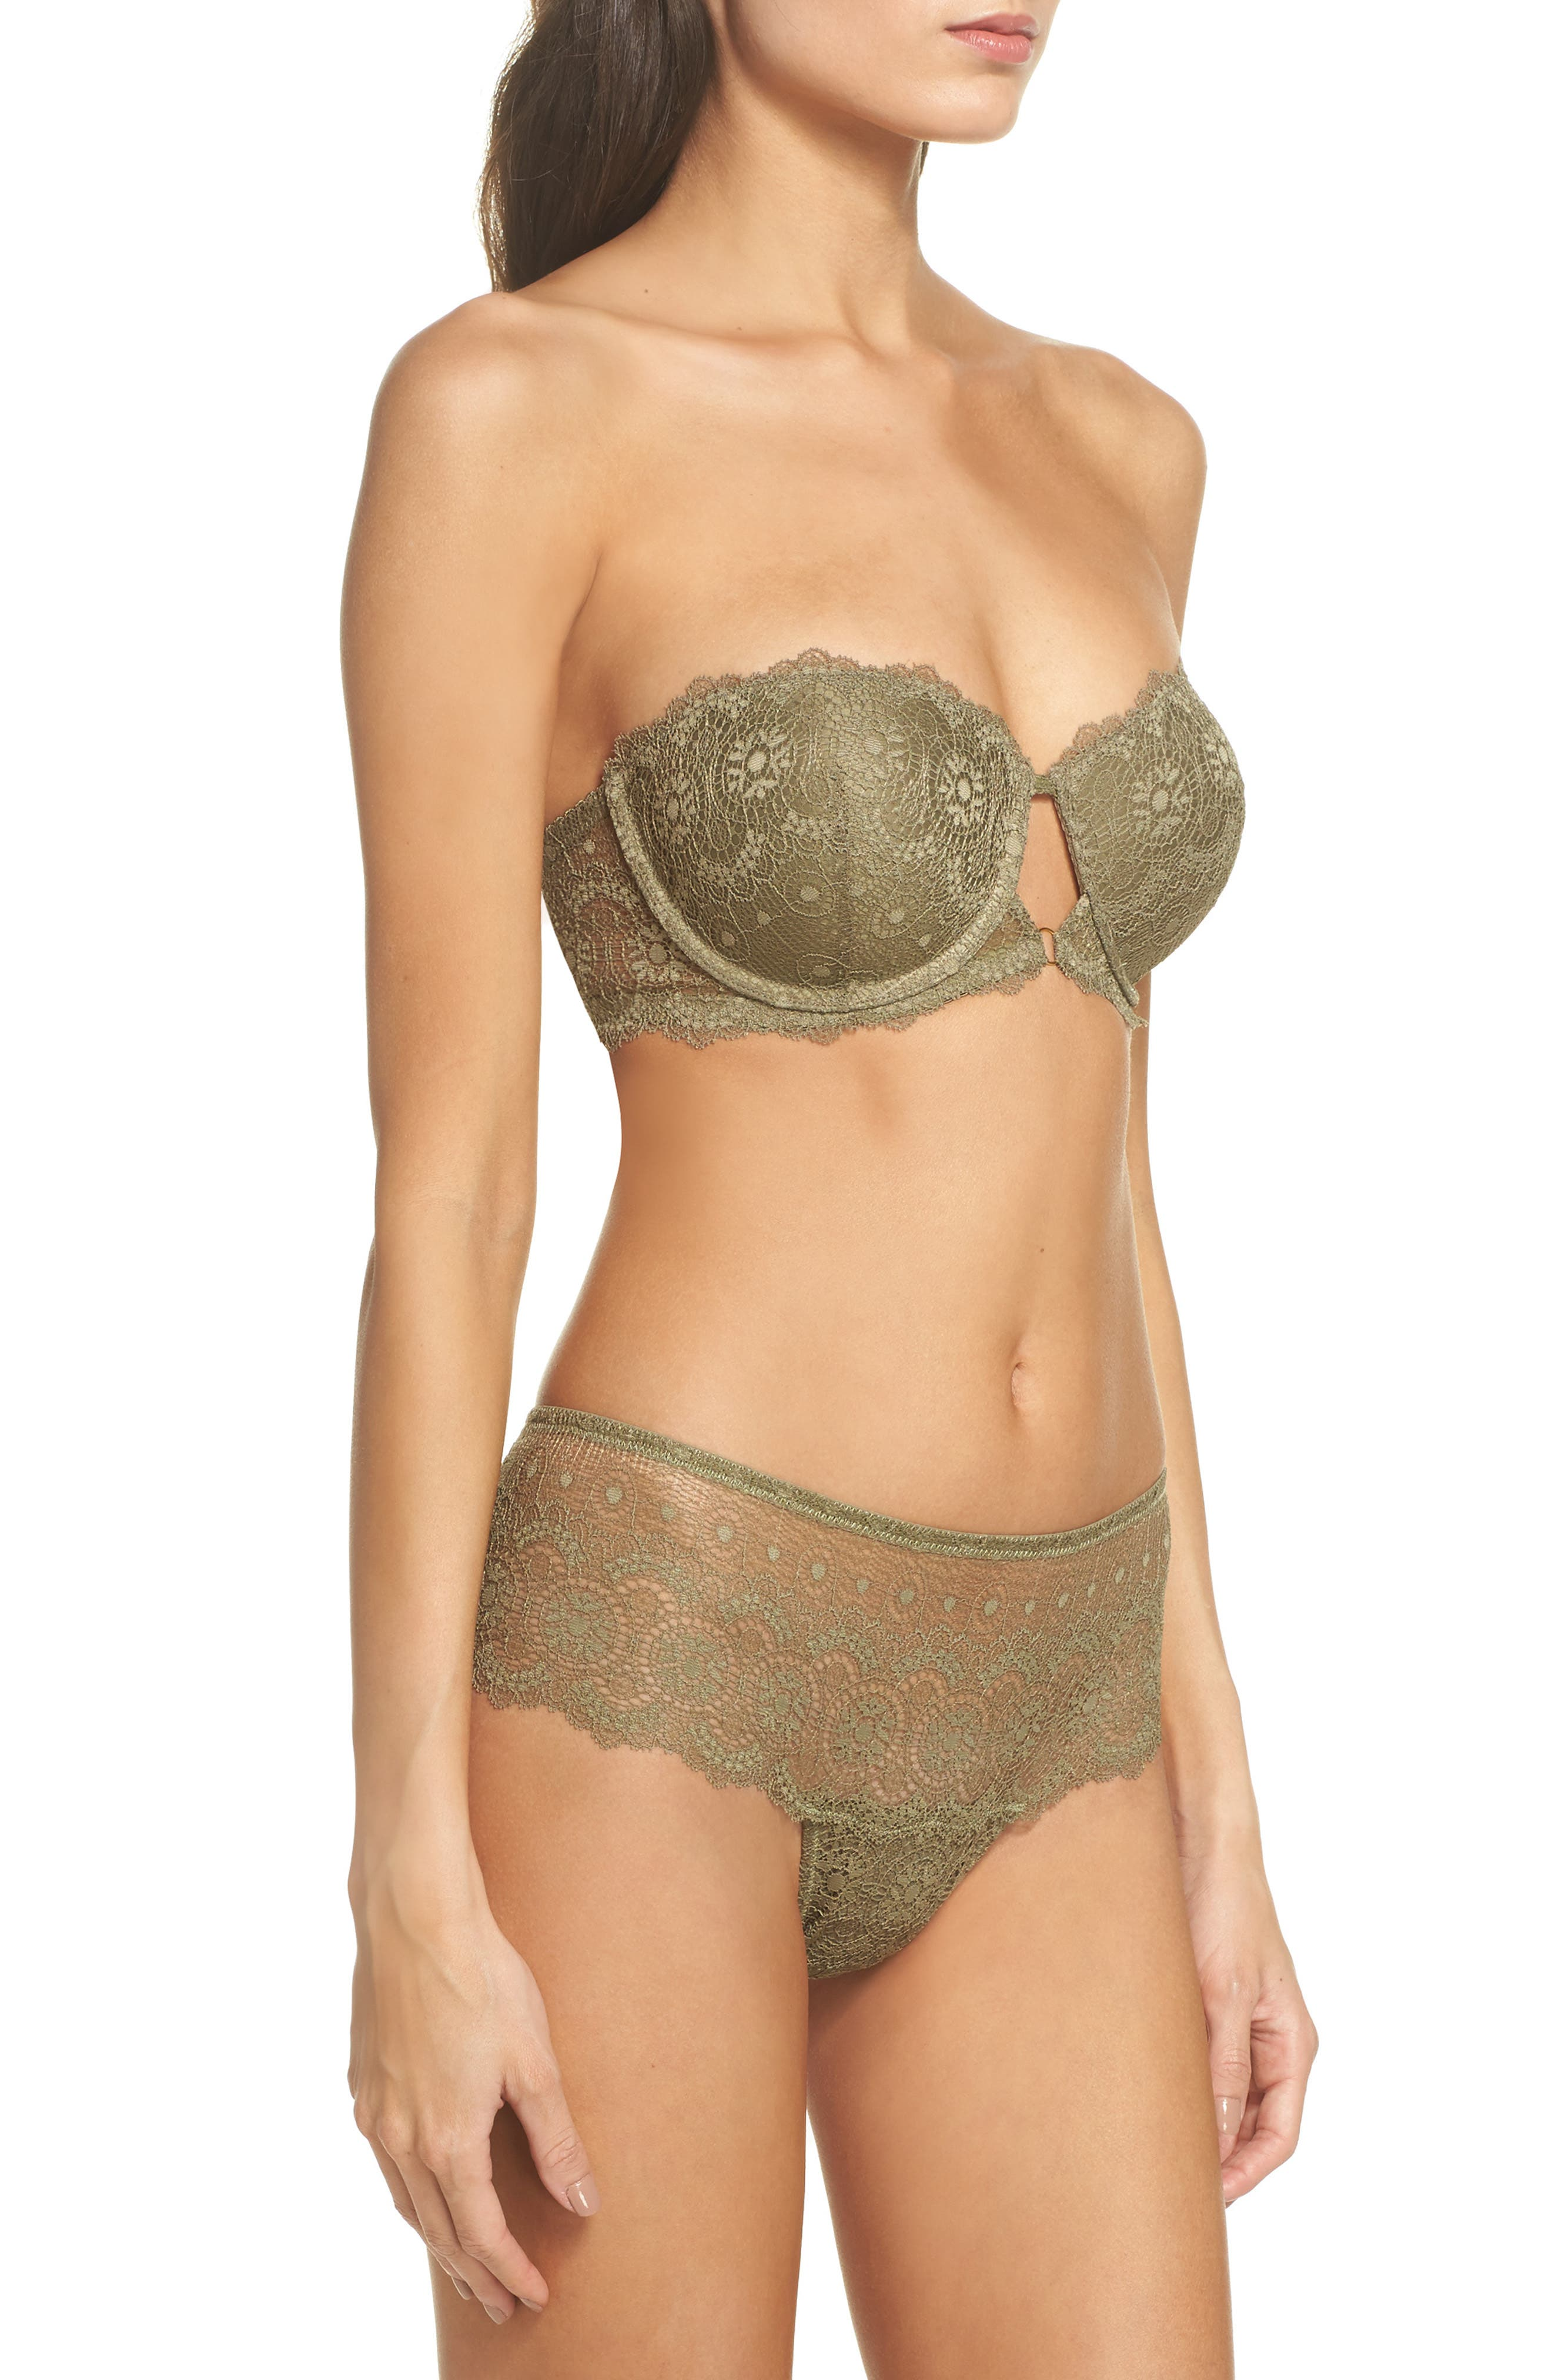 Strapless Underwire Lace Bra,                             Alternate thumbnail 11, color,                             331